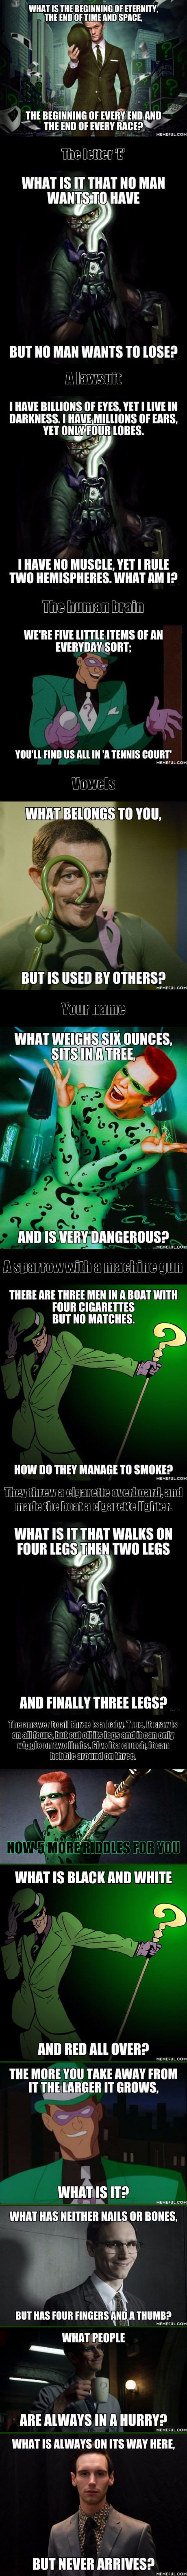 13 riddles from the Riddler, can you solve them? Newspaper, glove, hole, Russians, tomorrow.